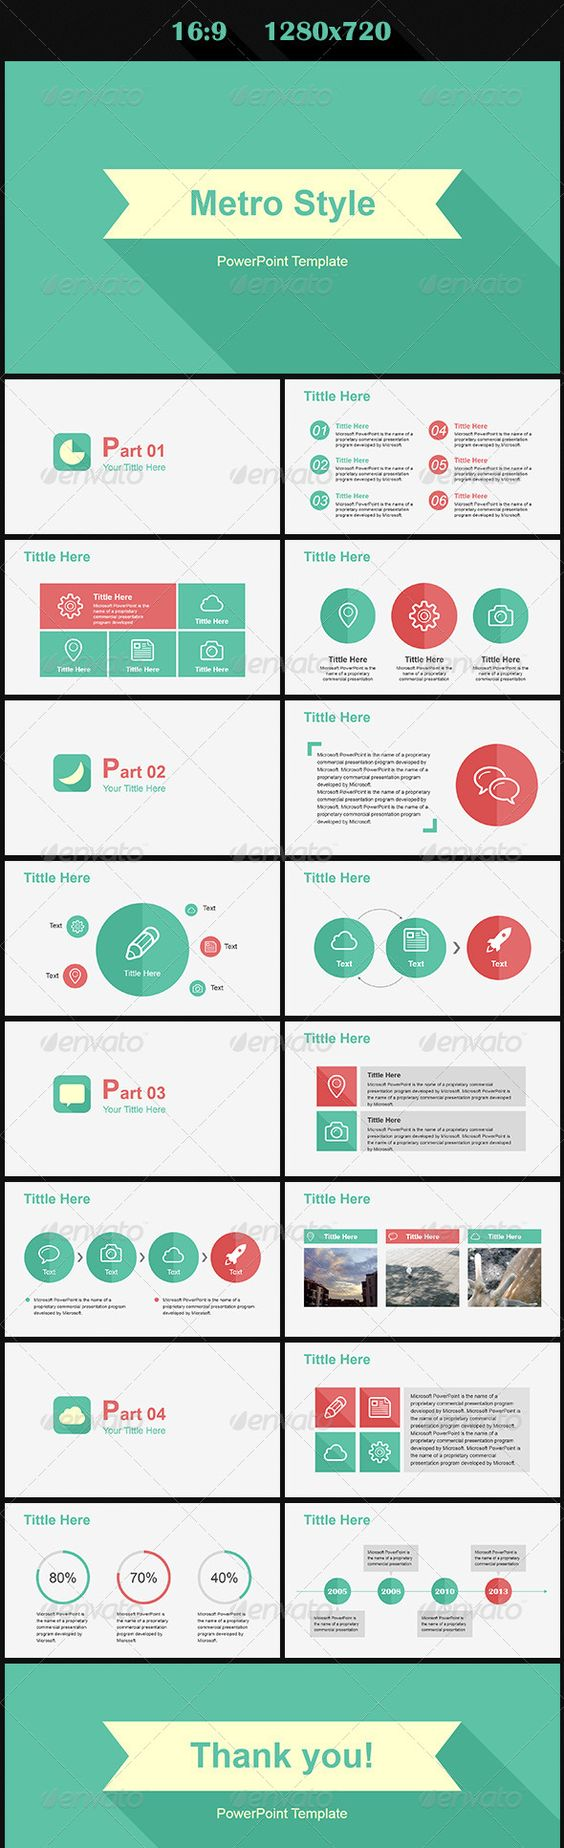 Metro style graphicriver its a modern and fashion powerpoint metro style graphicriver its a modern and fashion powerpoint template with metro style all slides are fully editable easy to change colors text toneelgroepblik Gallery